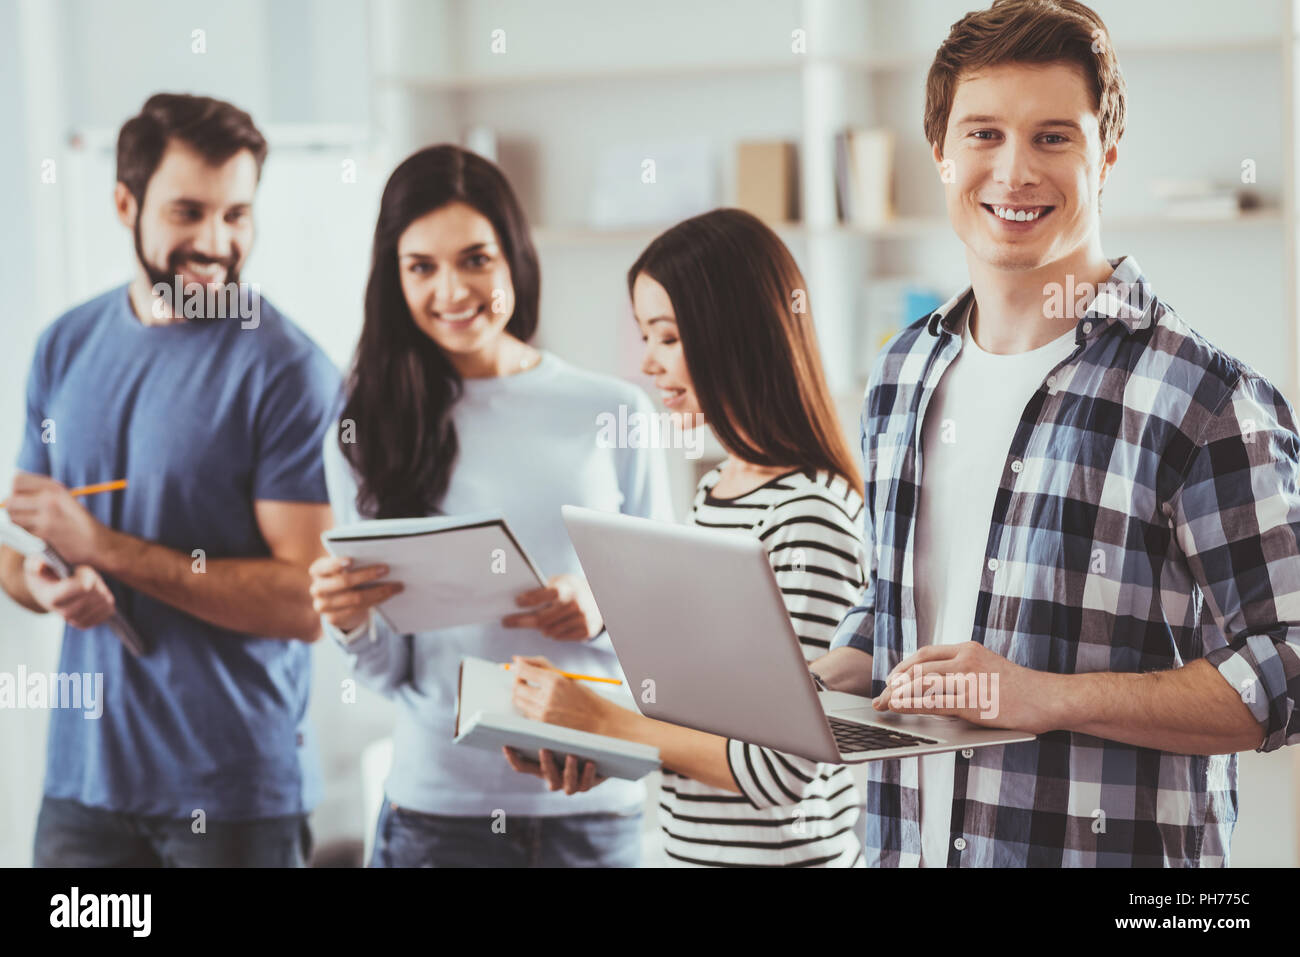 Smart young man holding a laptop - Stock Image